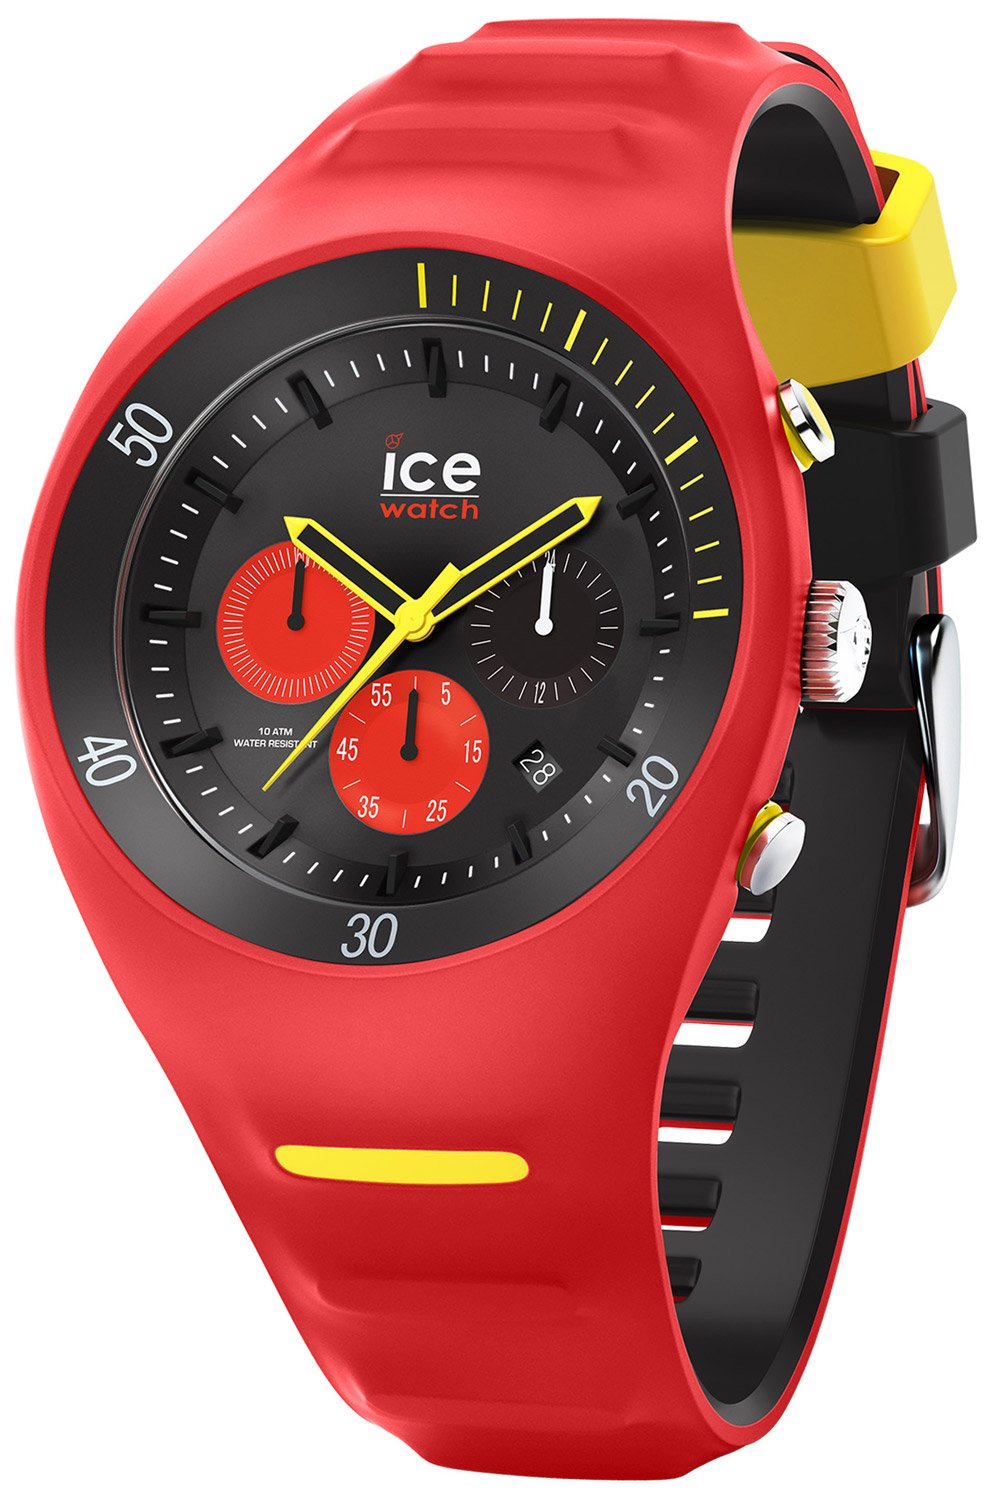 987ce6eb2c9baa ICE-WATCH Watches Page 2 • uhrcenter Watch Shop